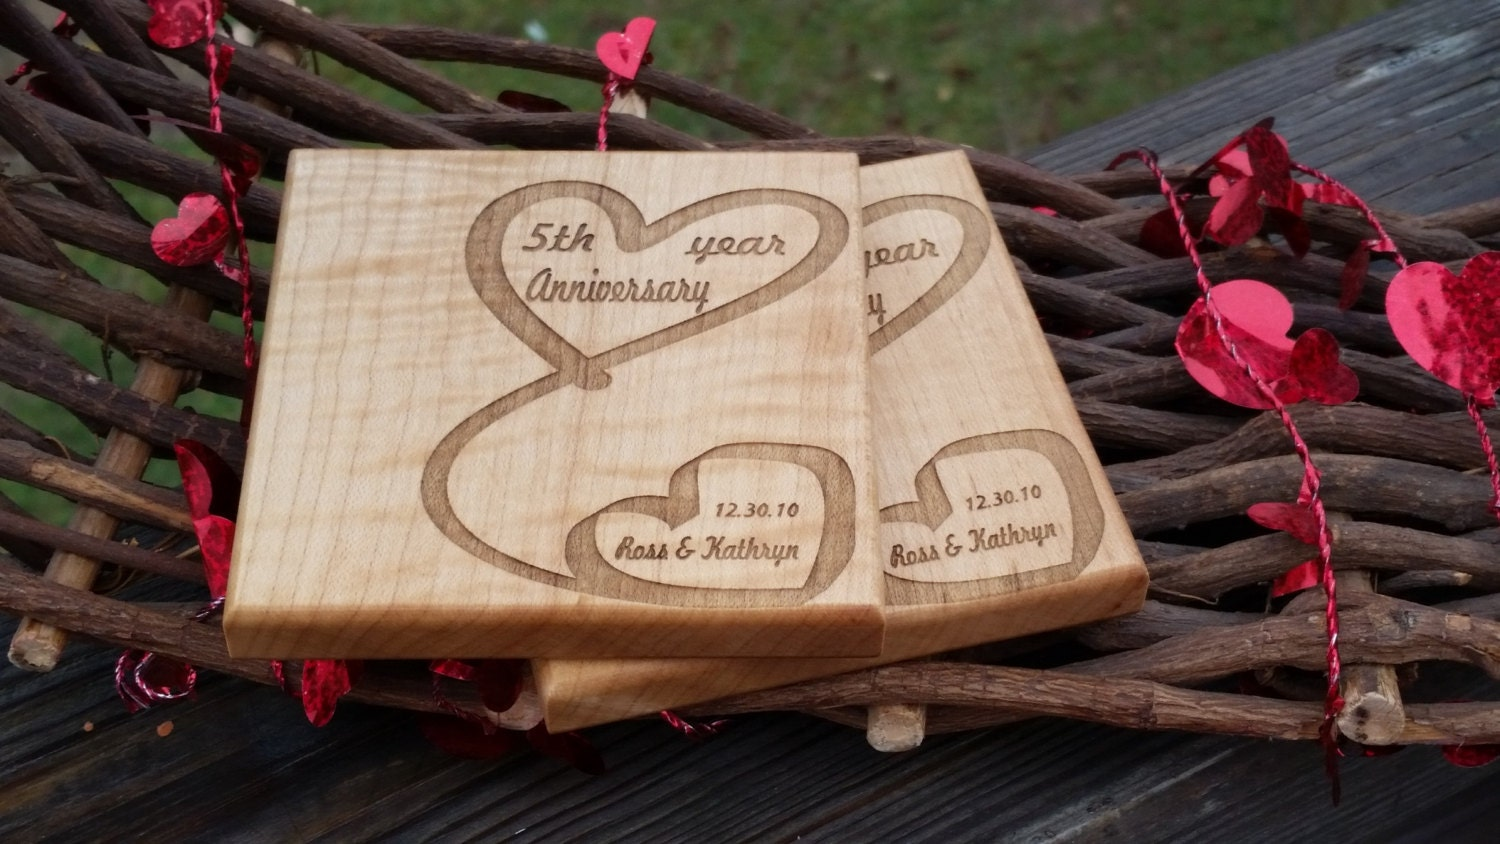 5th Wedding Anniversary Gift For Him: Custom 5th Anniversary Gift For Him Her Wooden Coasters